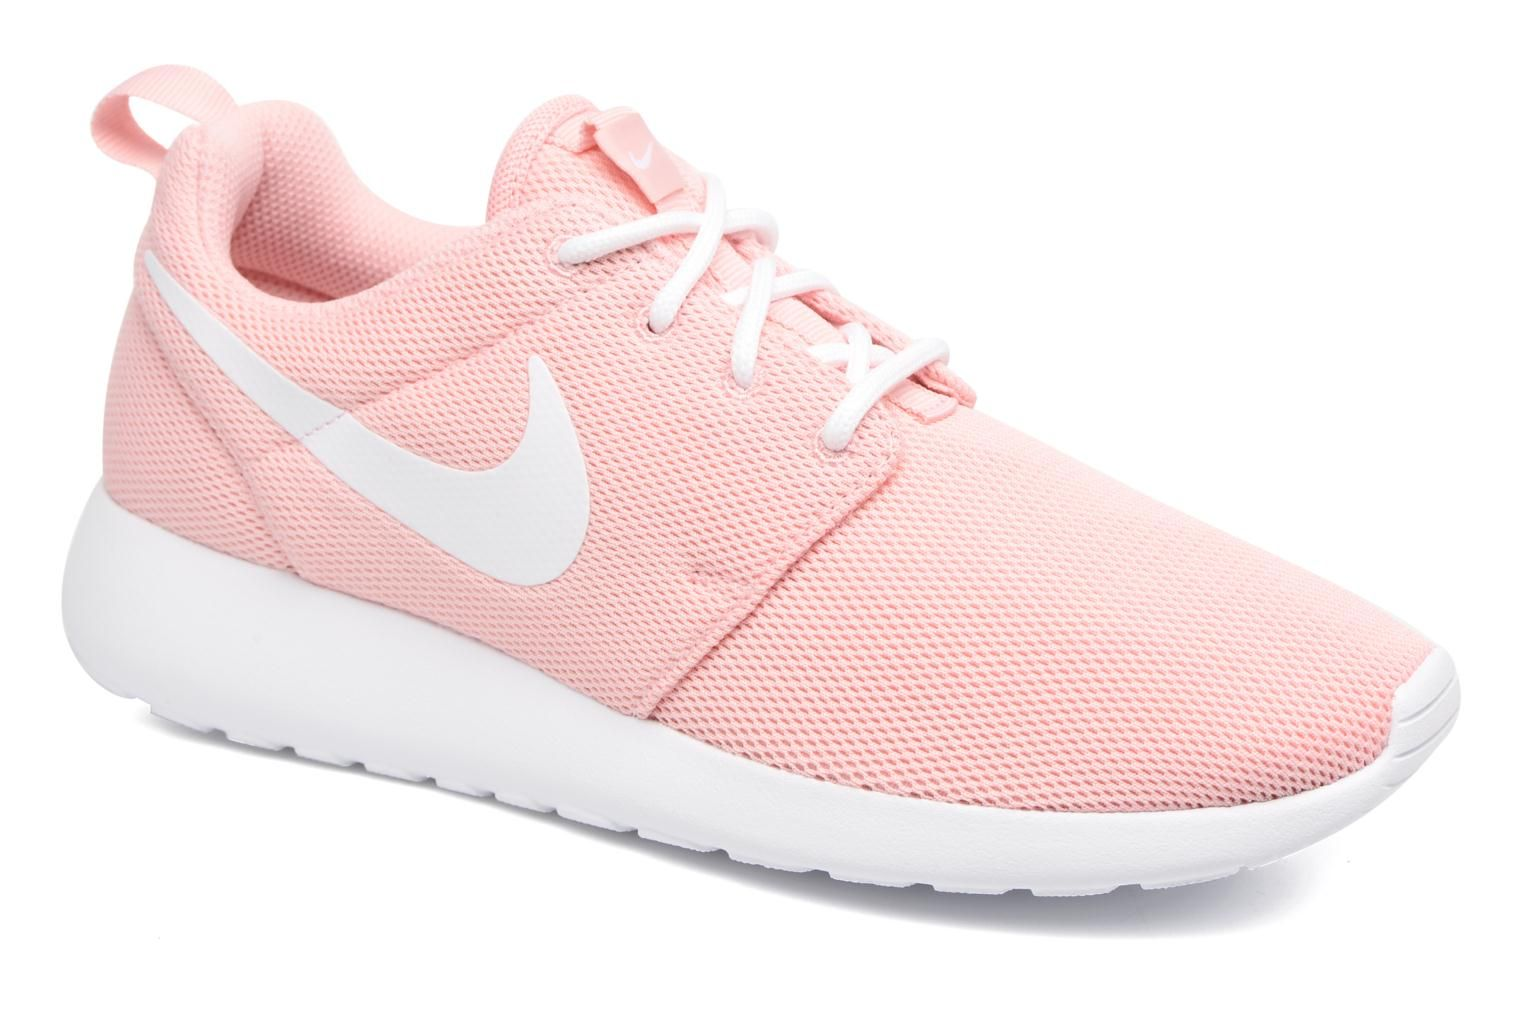 check out 6f446 4974b Wmns Nike Roshe One by Nike. ¡Envío GRATIS en 48hr! Deportivas Nike  (Mujer), disponible en 383942 , deportivas, sport, deporte, deportivo,  fitness, ...